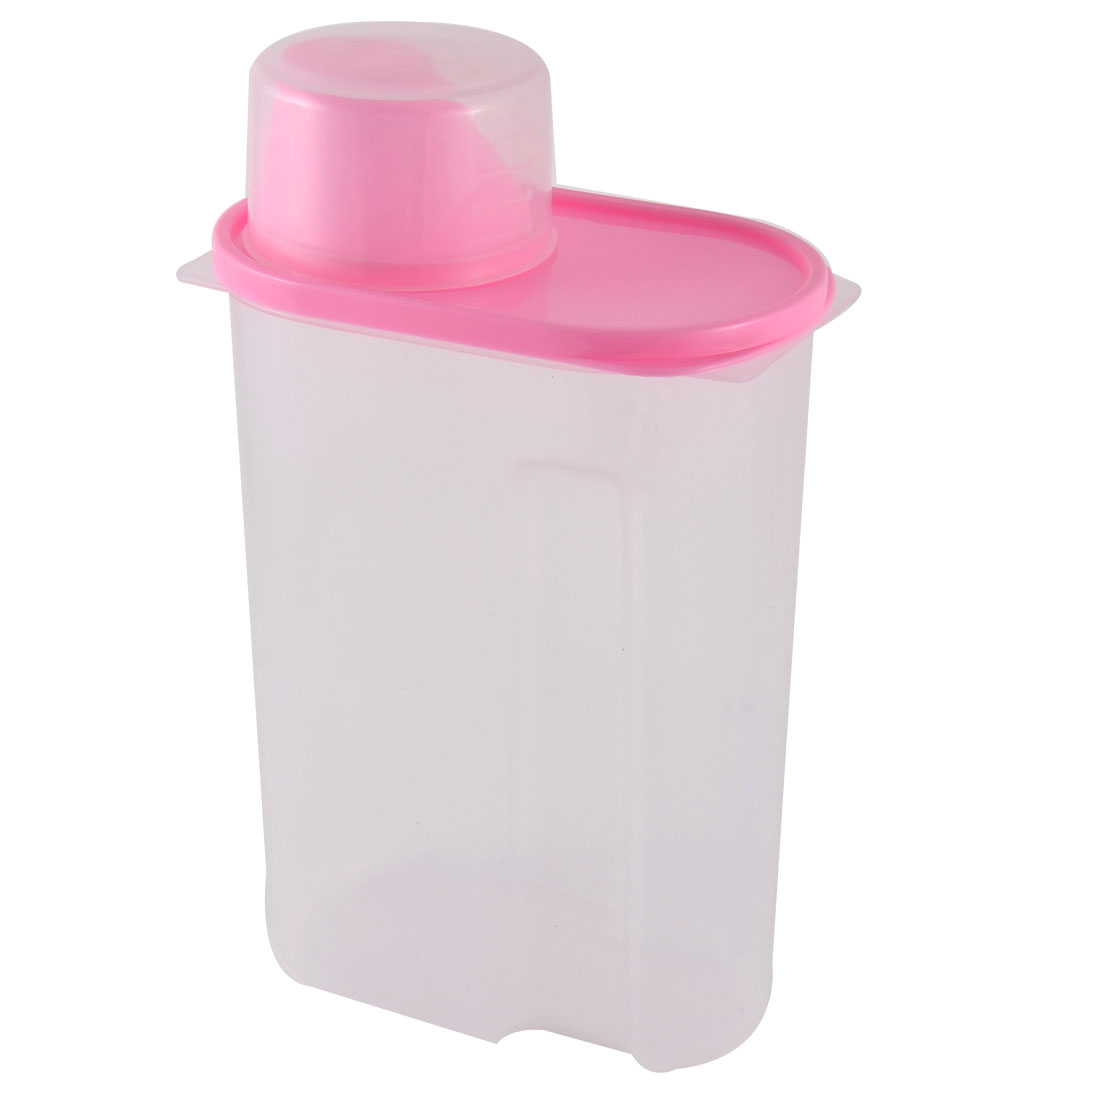 Family Kitchenware Plastic Airtight Soybean Rice Food Storage Seal Box Pink